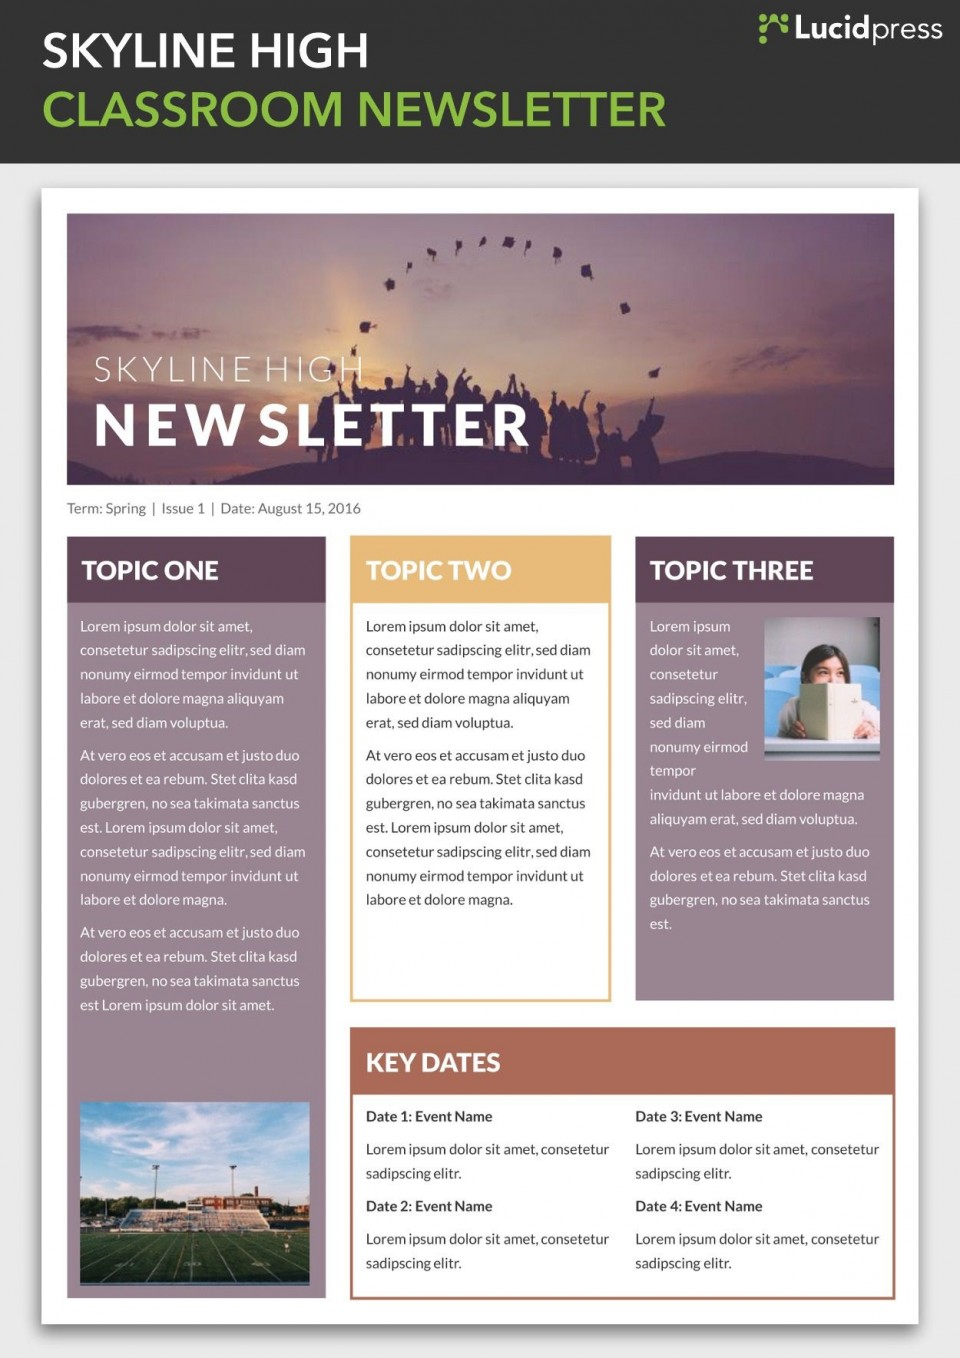 004 Simple School Newsletter Template Free Photo  Publisher Editable Counselor960